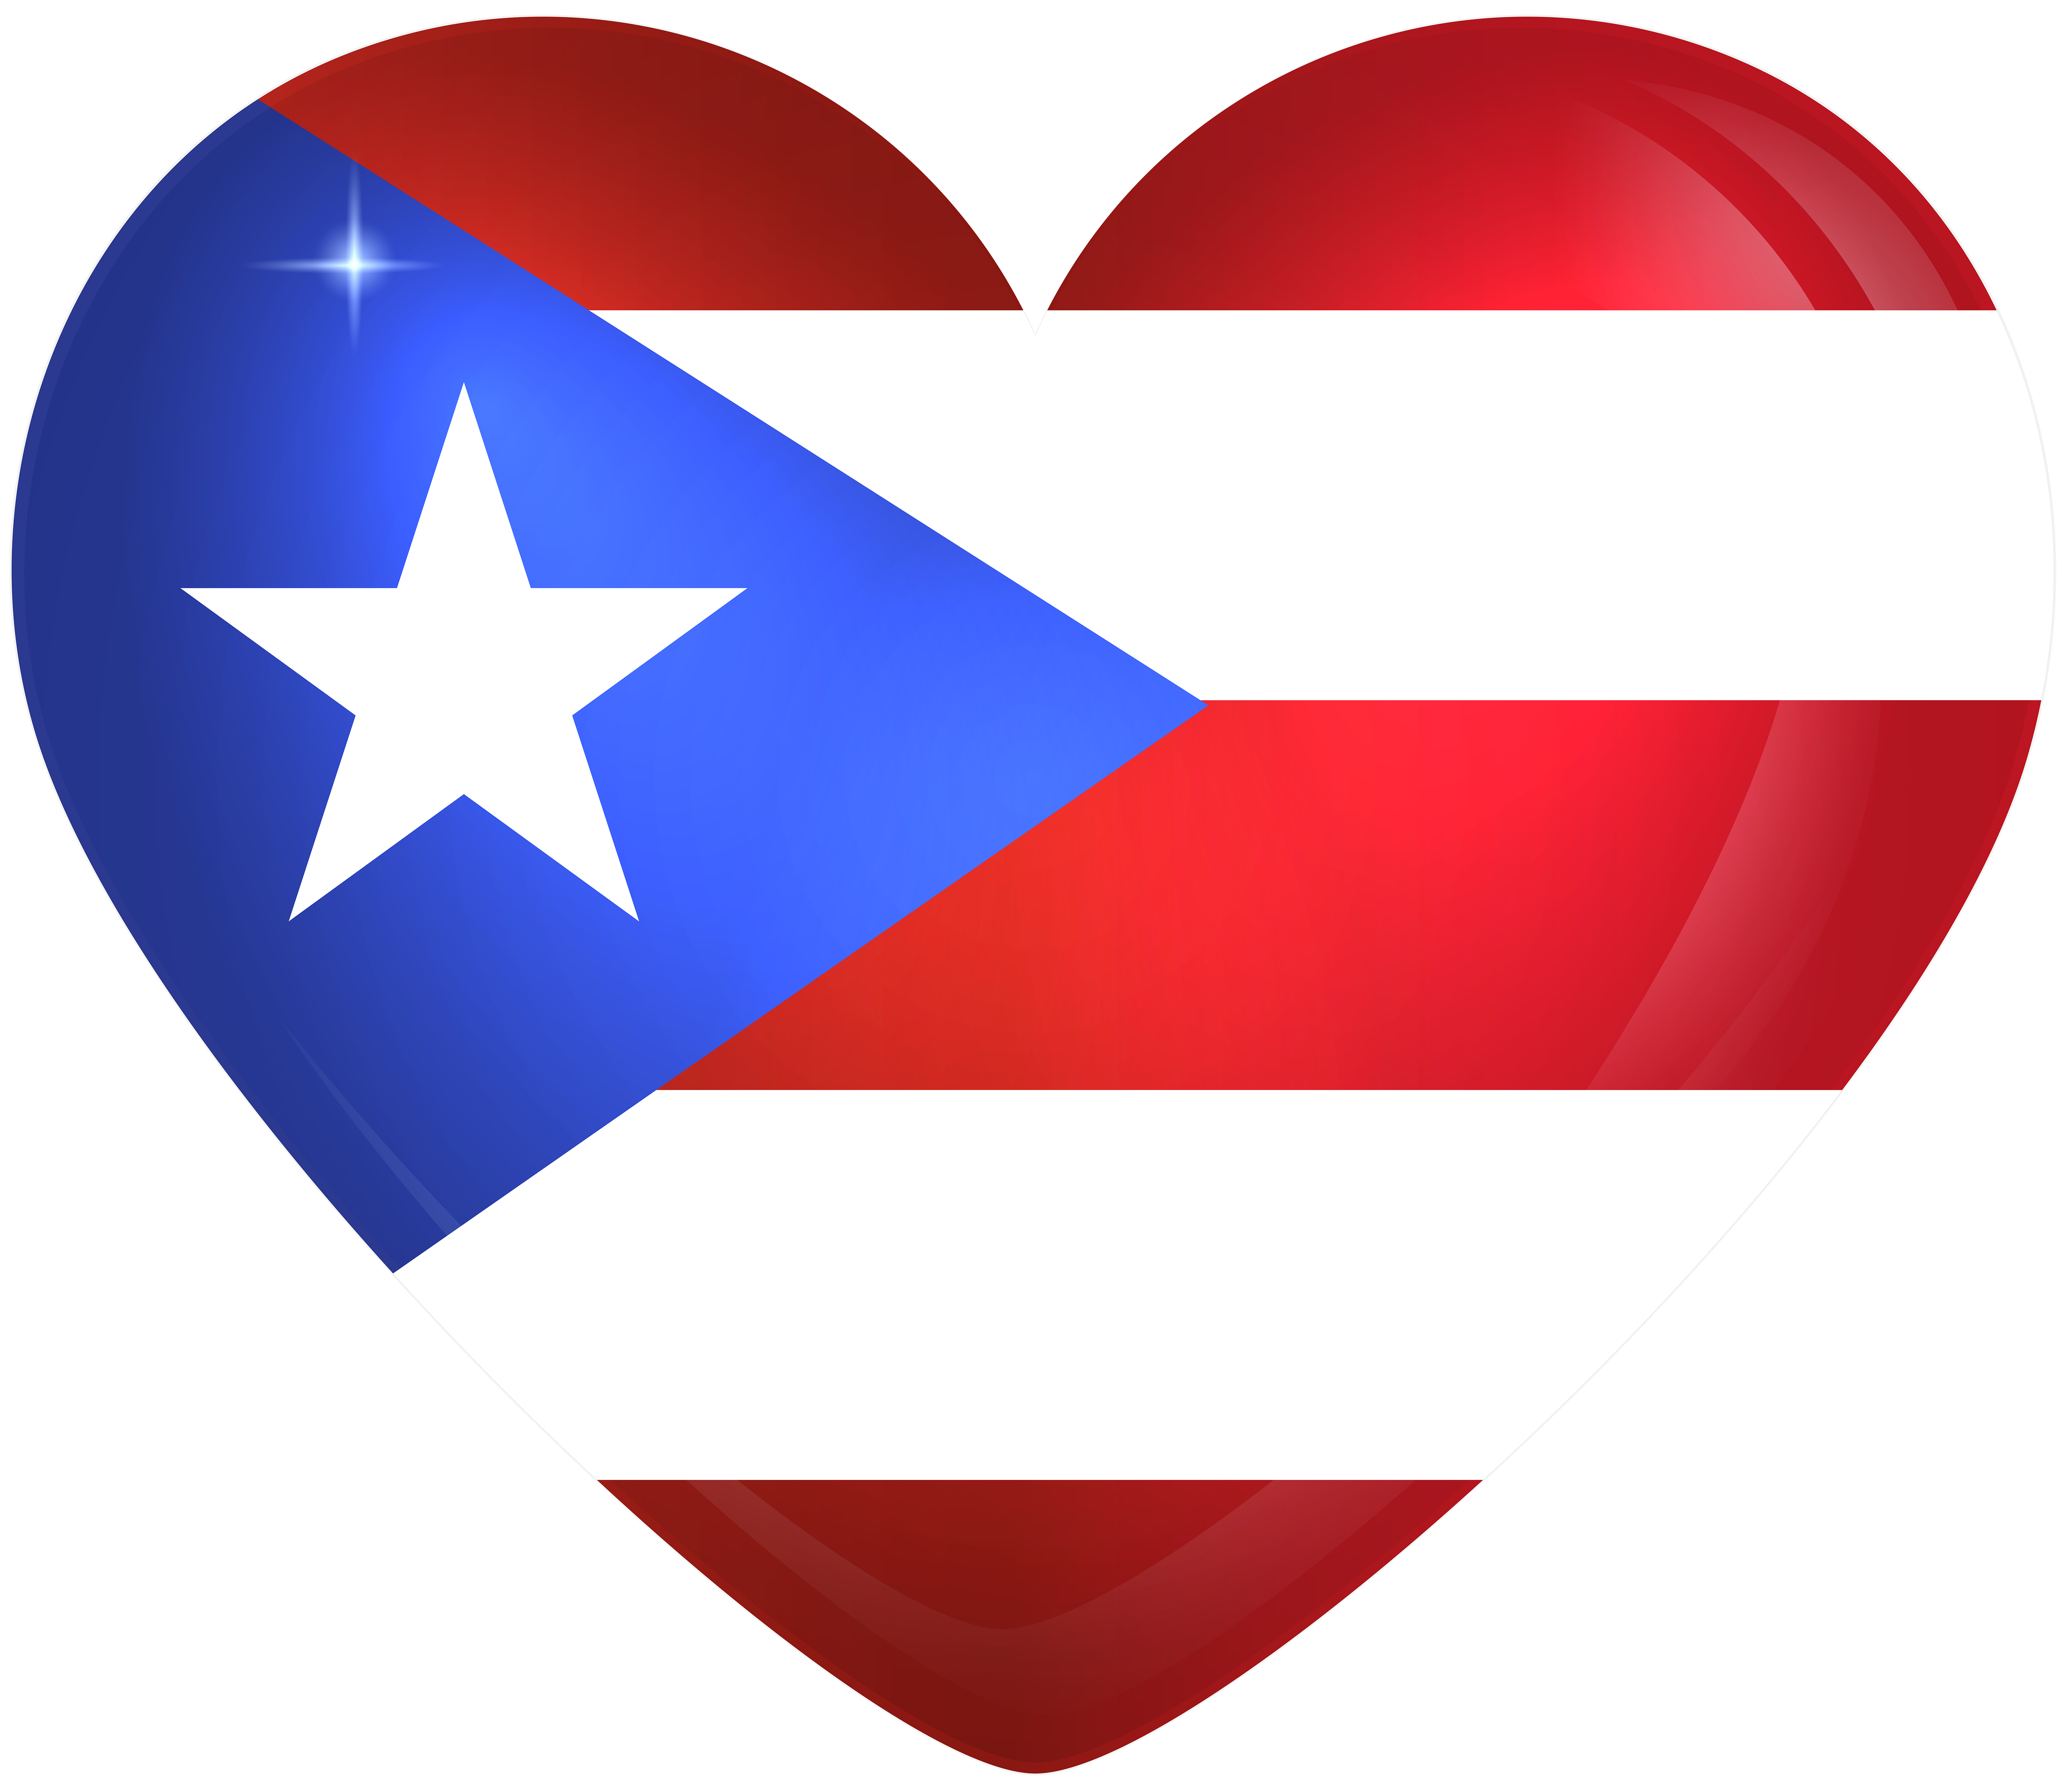 Puerto rico large heart. Hearts clipart butterfly